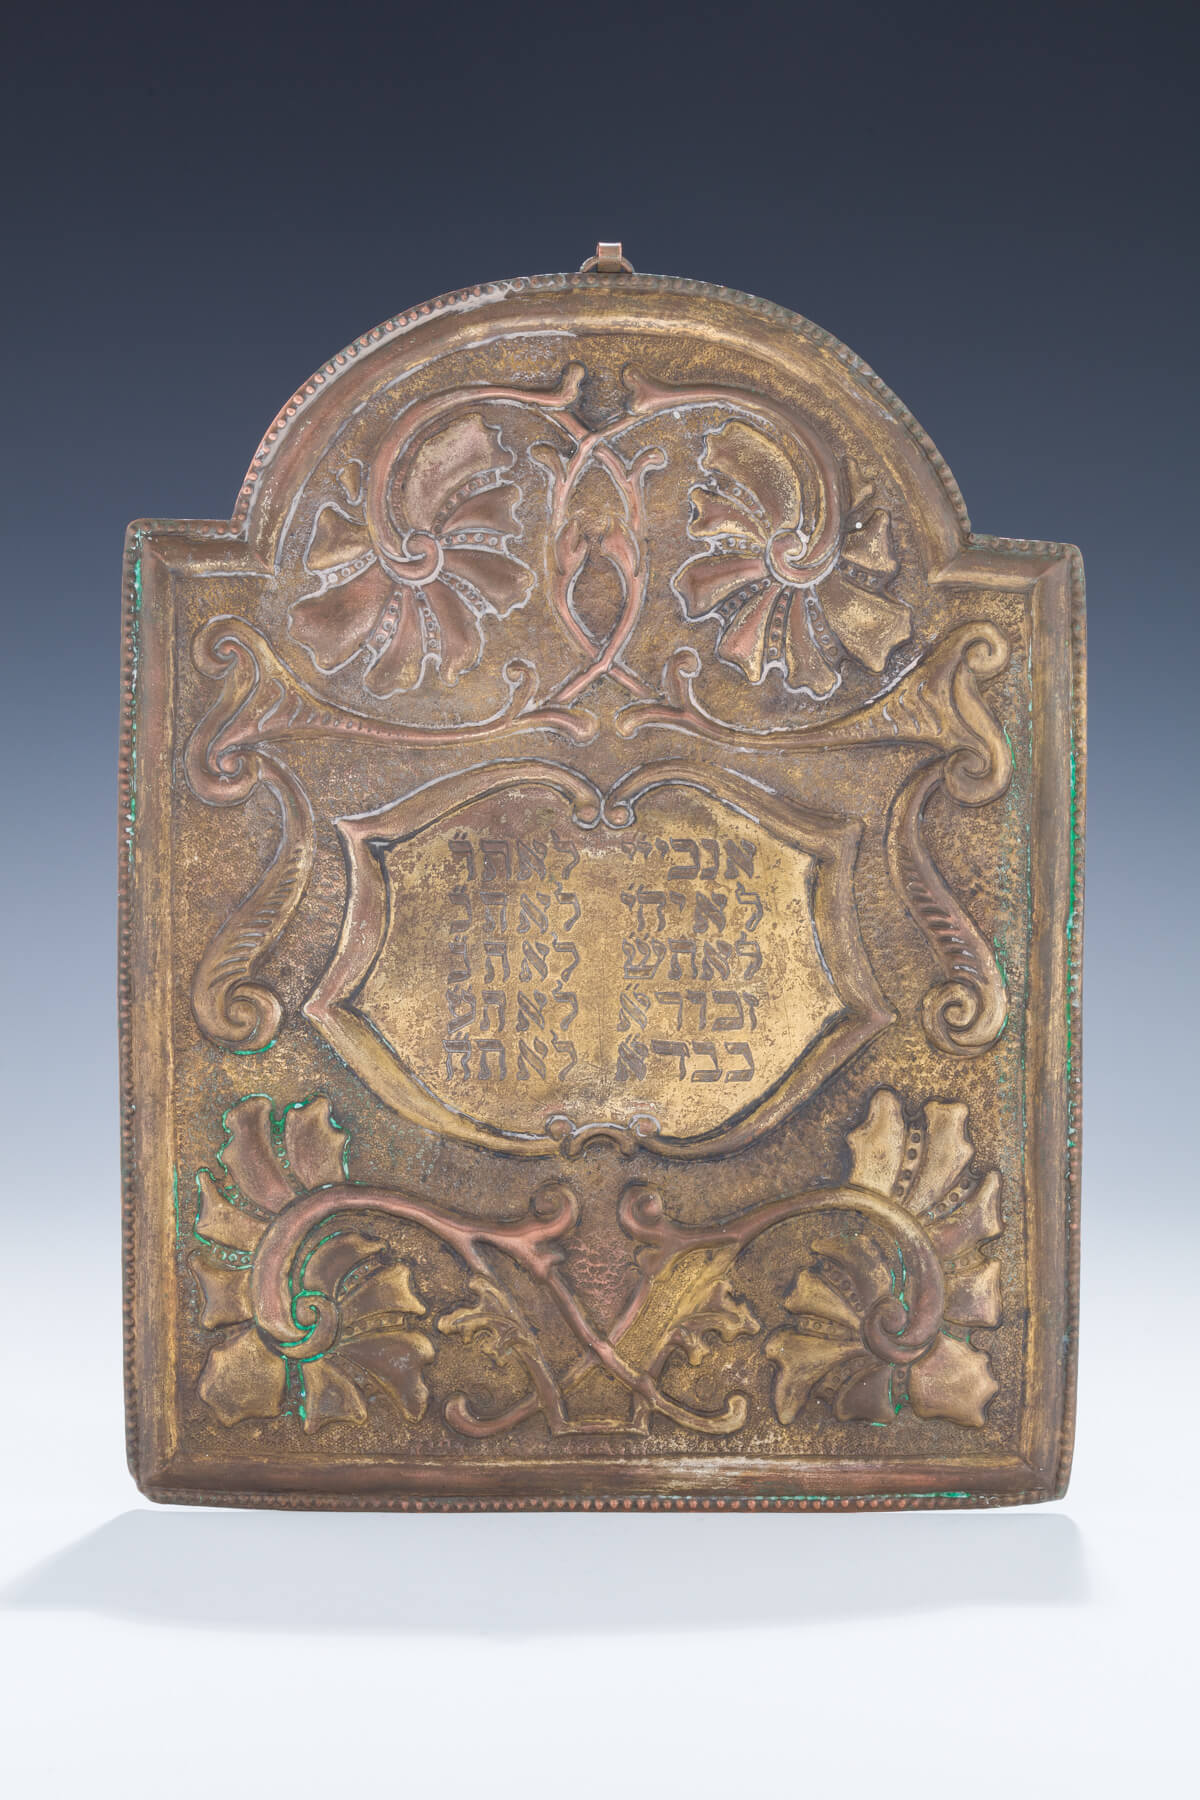 035. A Torah Shield